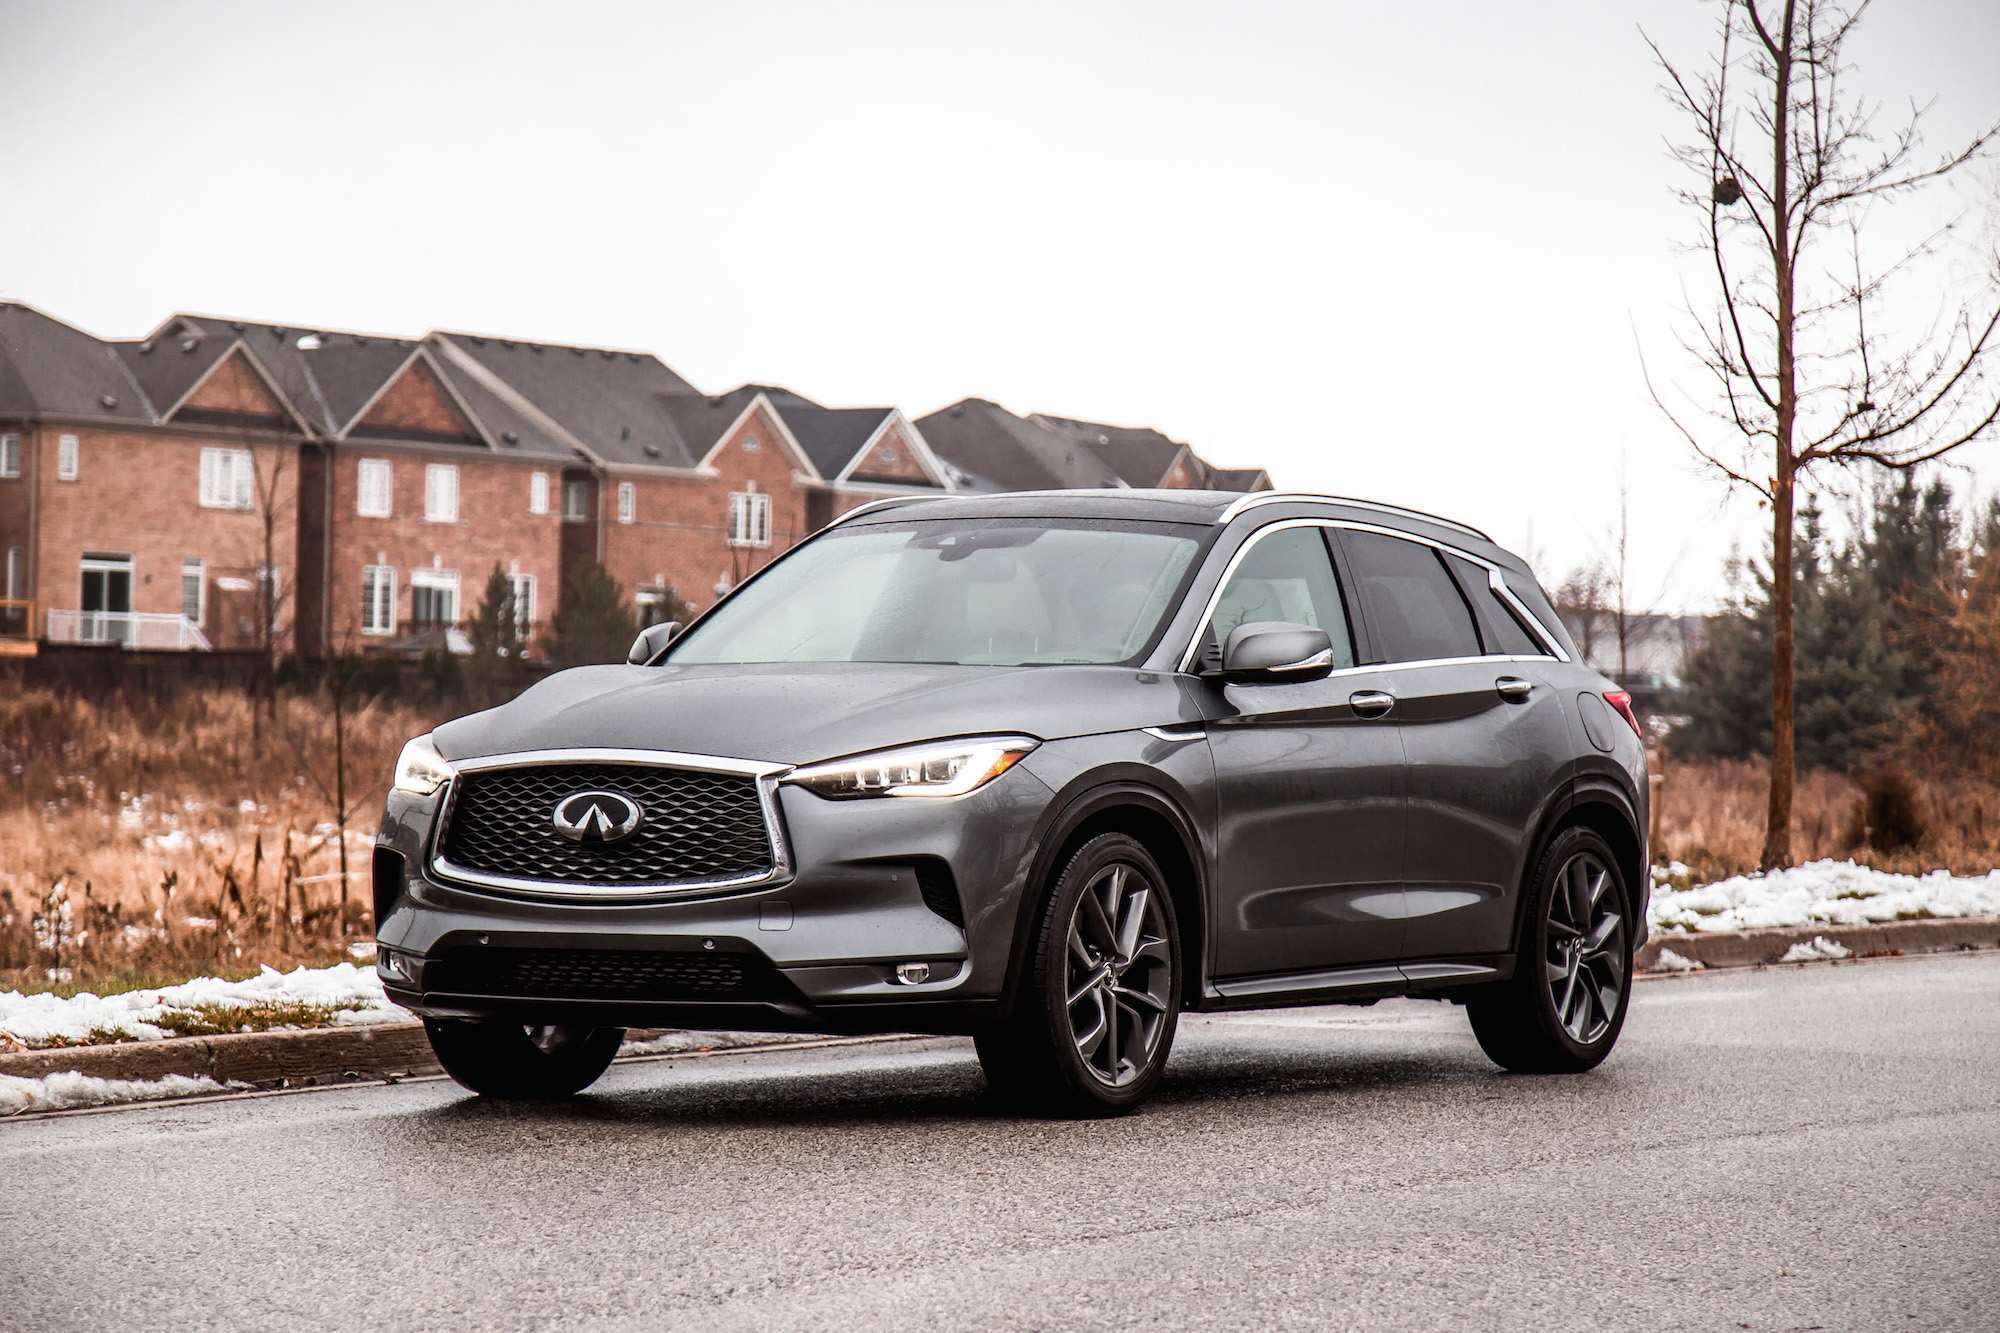 46 Gallery of Best 2019 Infiniti Qx50 Autograph Price Spy Shoot for Best 2019 Infiniti Qx50 Autograph Price